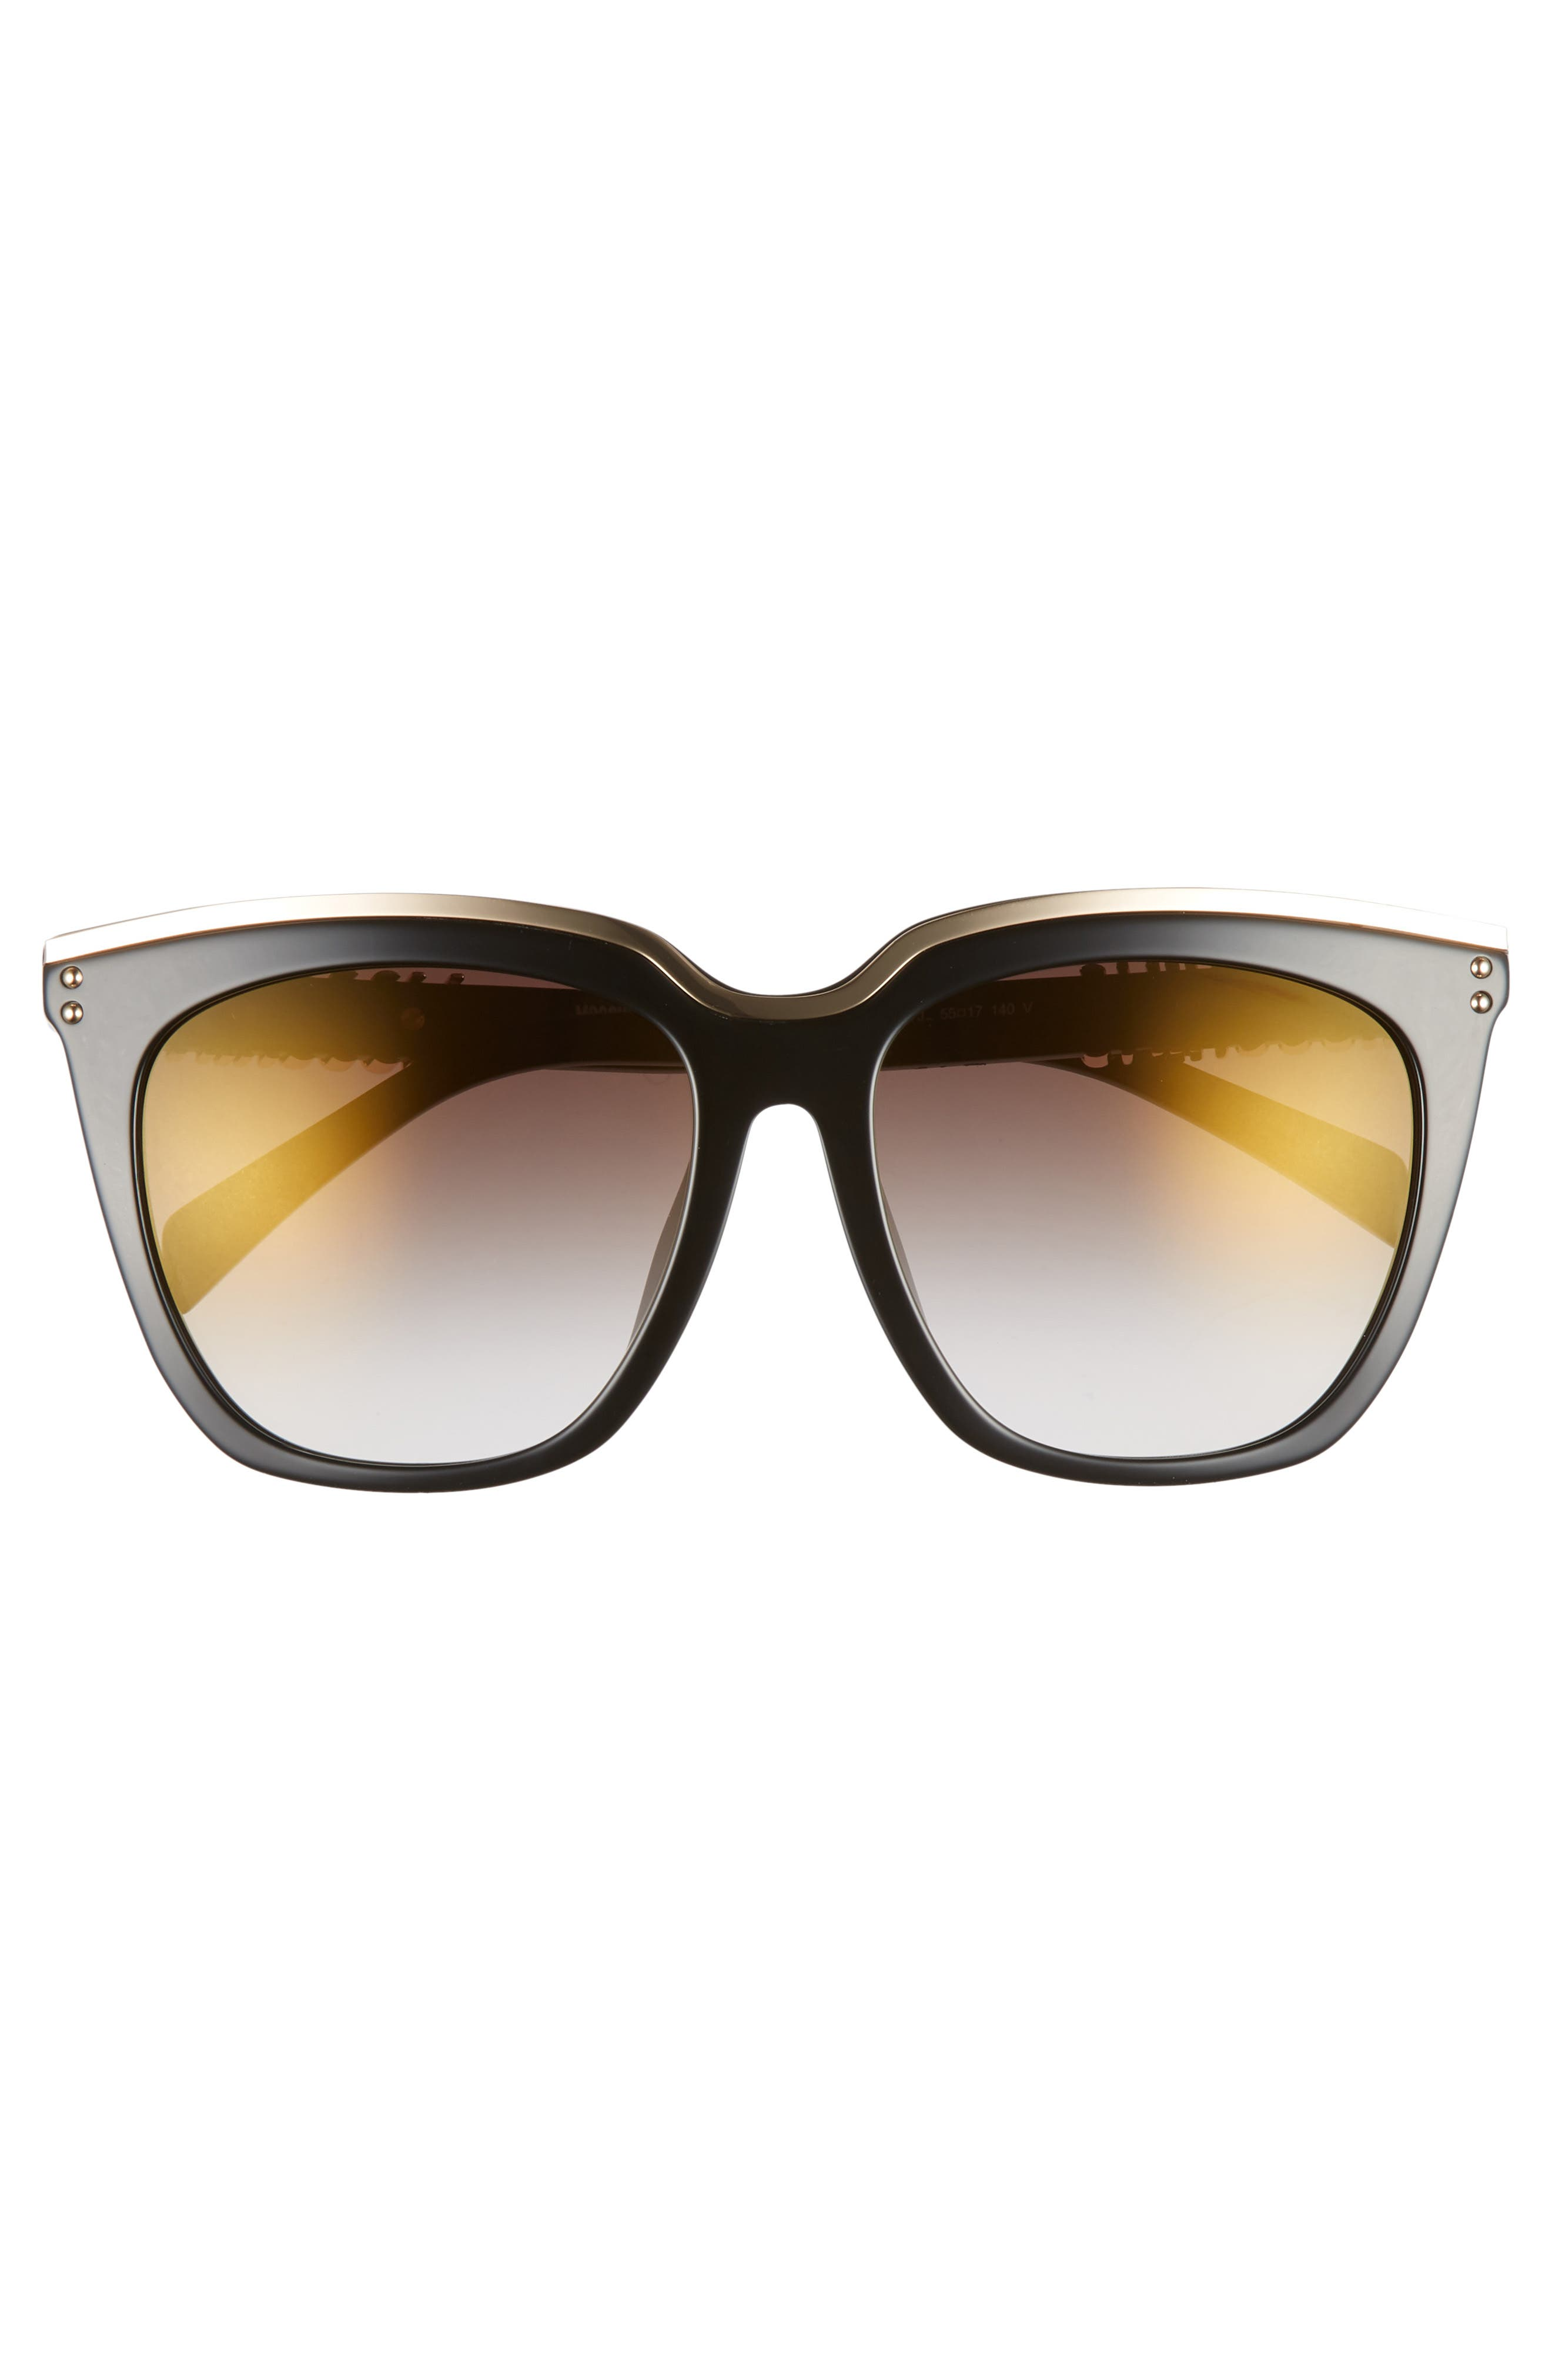 55mm Special Fit Mirrored Cat Eye Sunglasses,                             Alternate thumbnail 3, color,                             BLACK/ GOLD